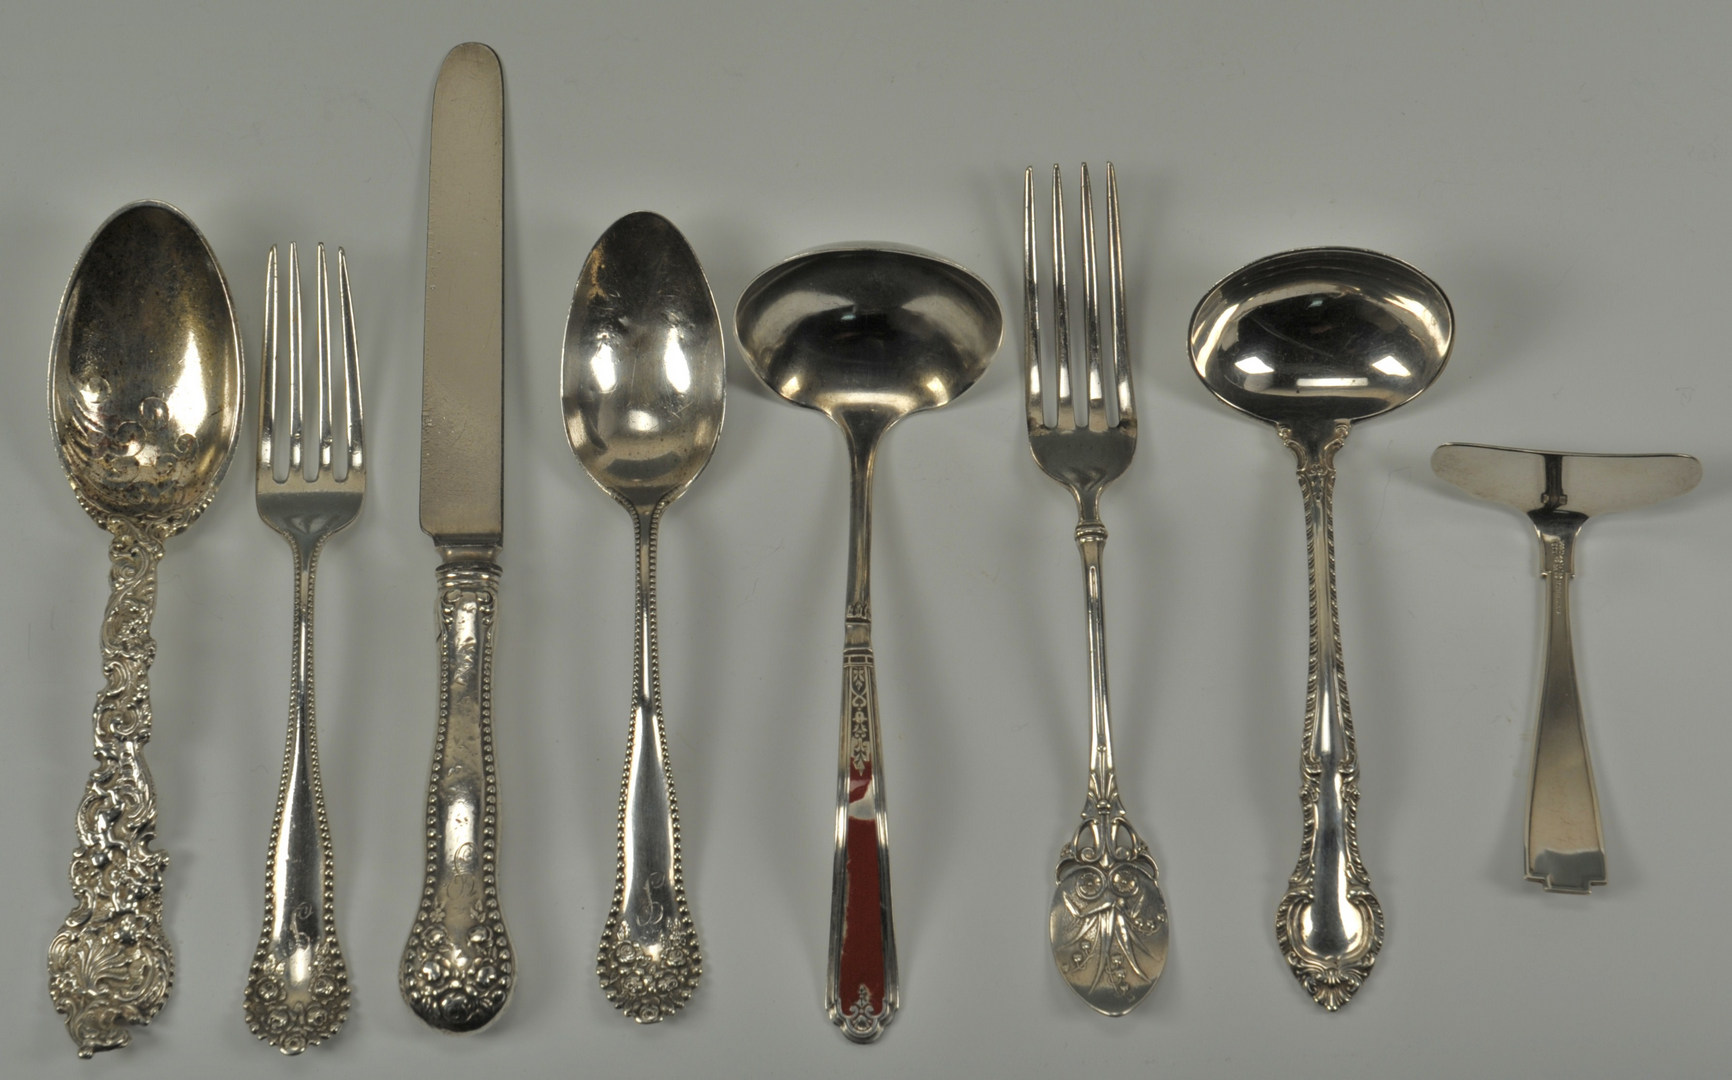 Lot 417: 31 Pieces of Mixed Gorham Sterling Flatware